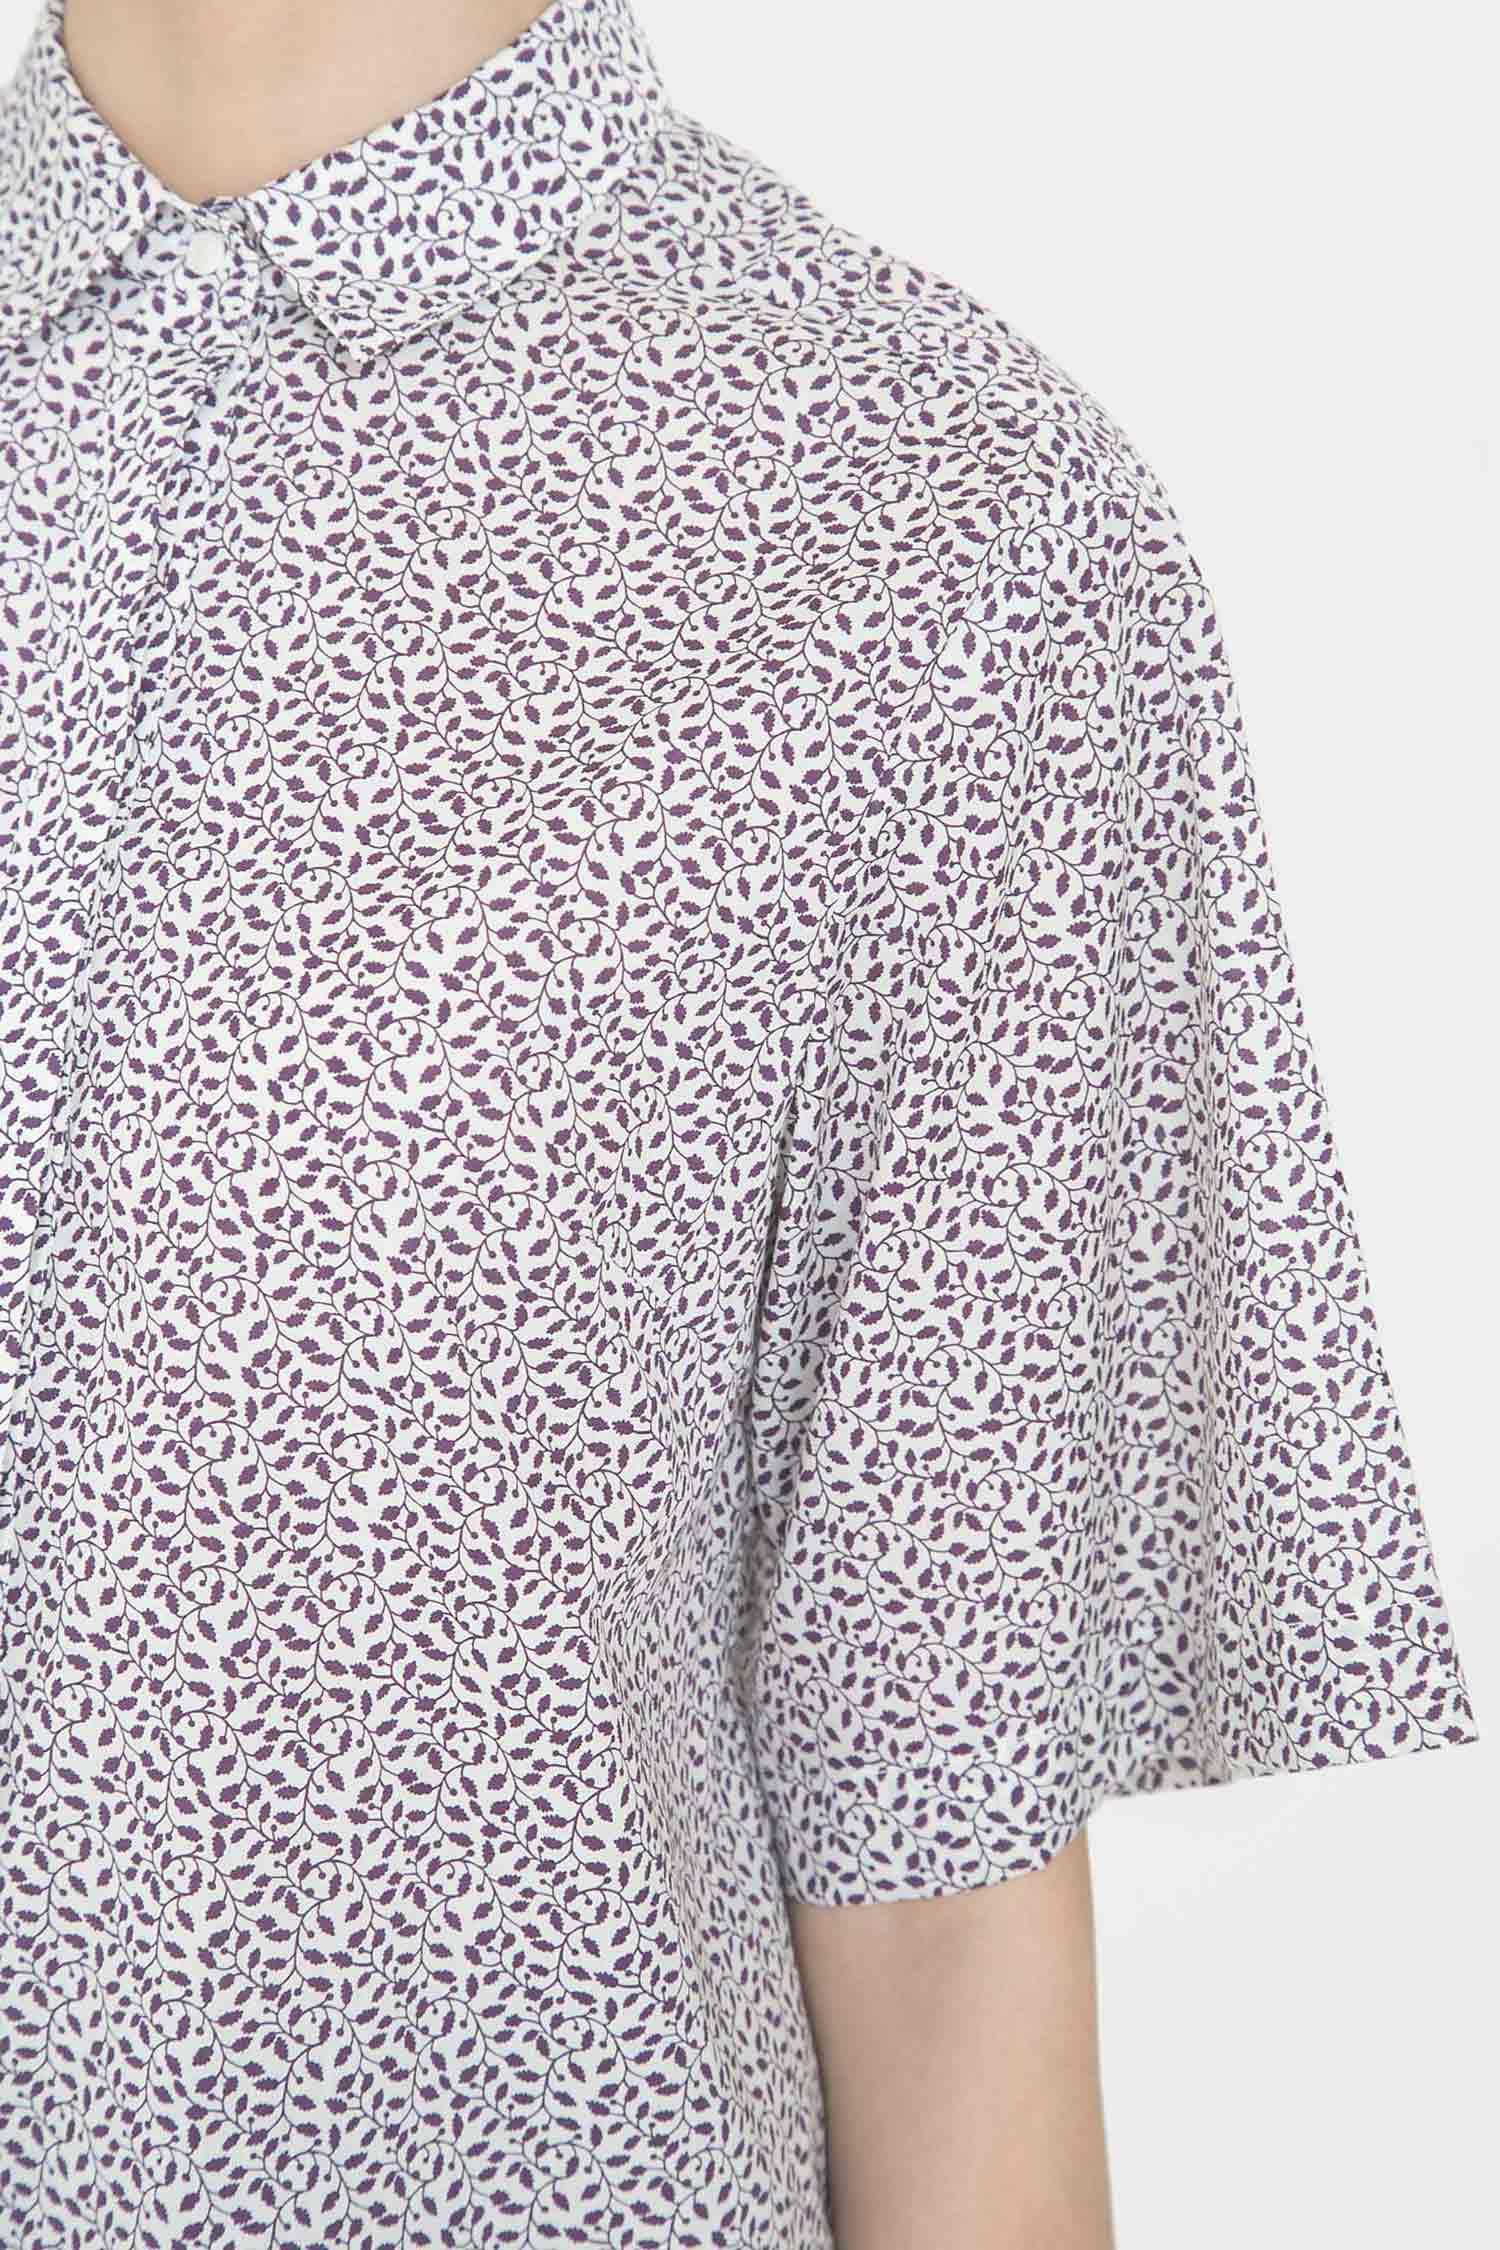 [COURRI x LIBERTY] VIOLET LIV SHORTSLEEVE SHIRTS